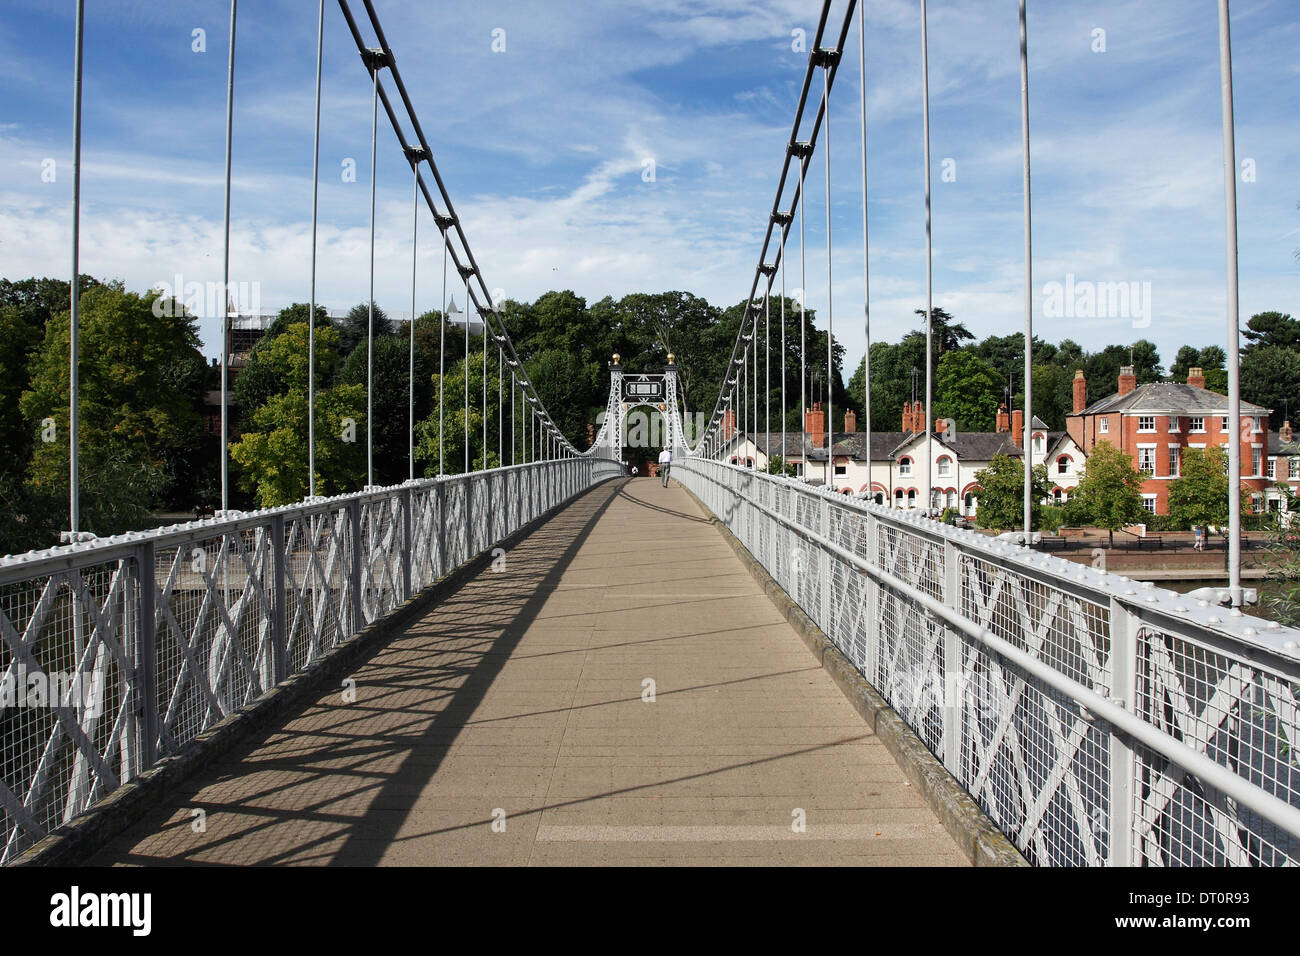 The Queens Park Bridge across the River Dee in Chester, England. Stock Photo